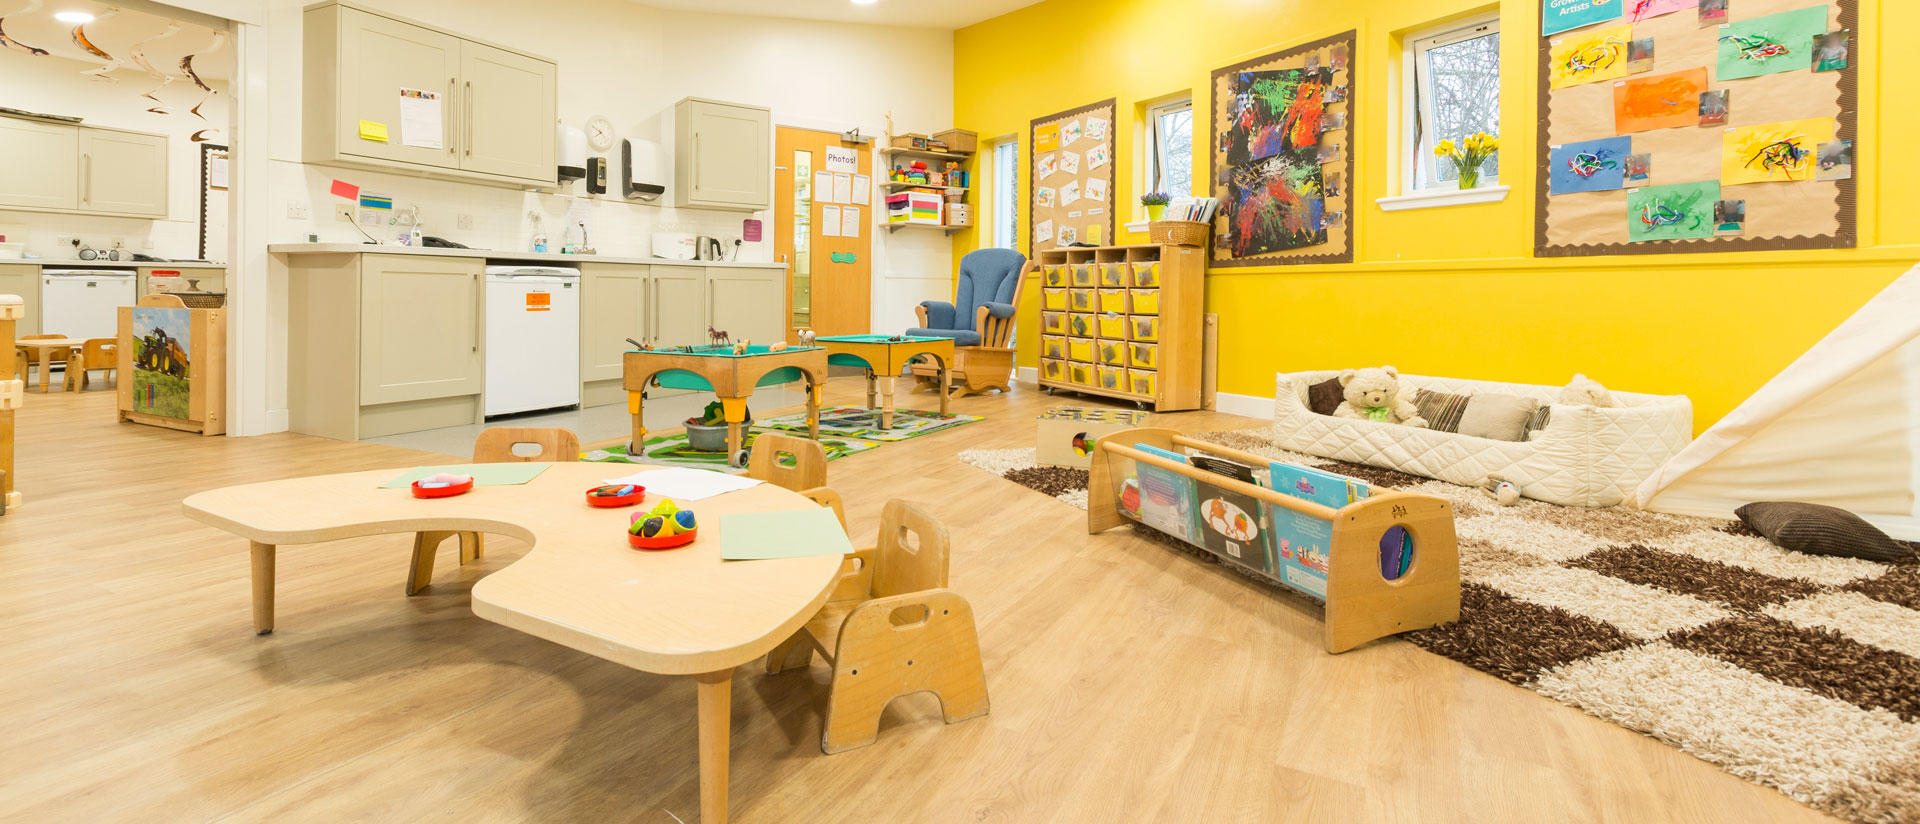 Bright Horizons Cramond Early Learning and Childcare